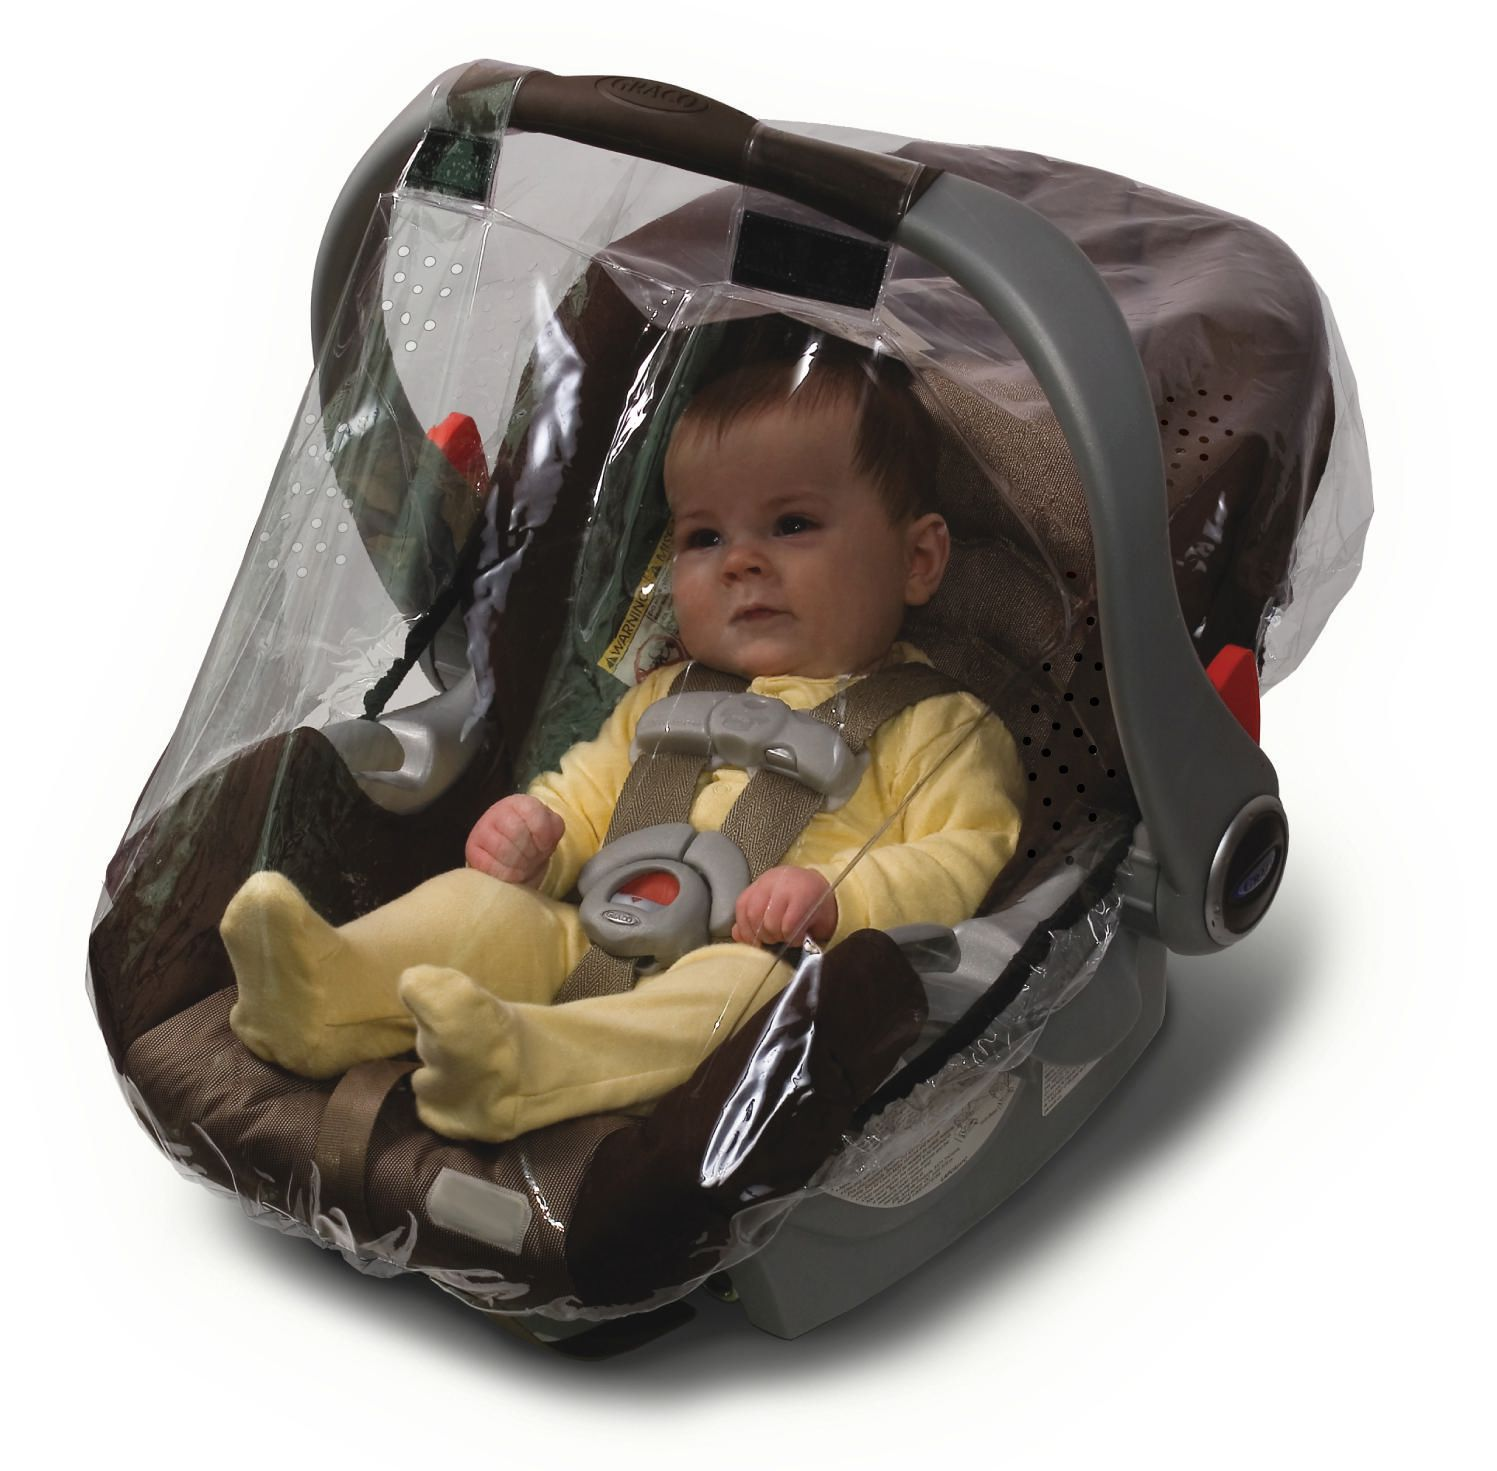 Plastic Cover For Baby Car Seat - Velcromag